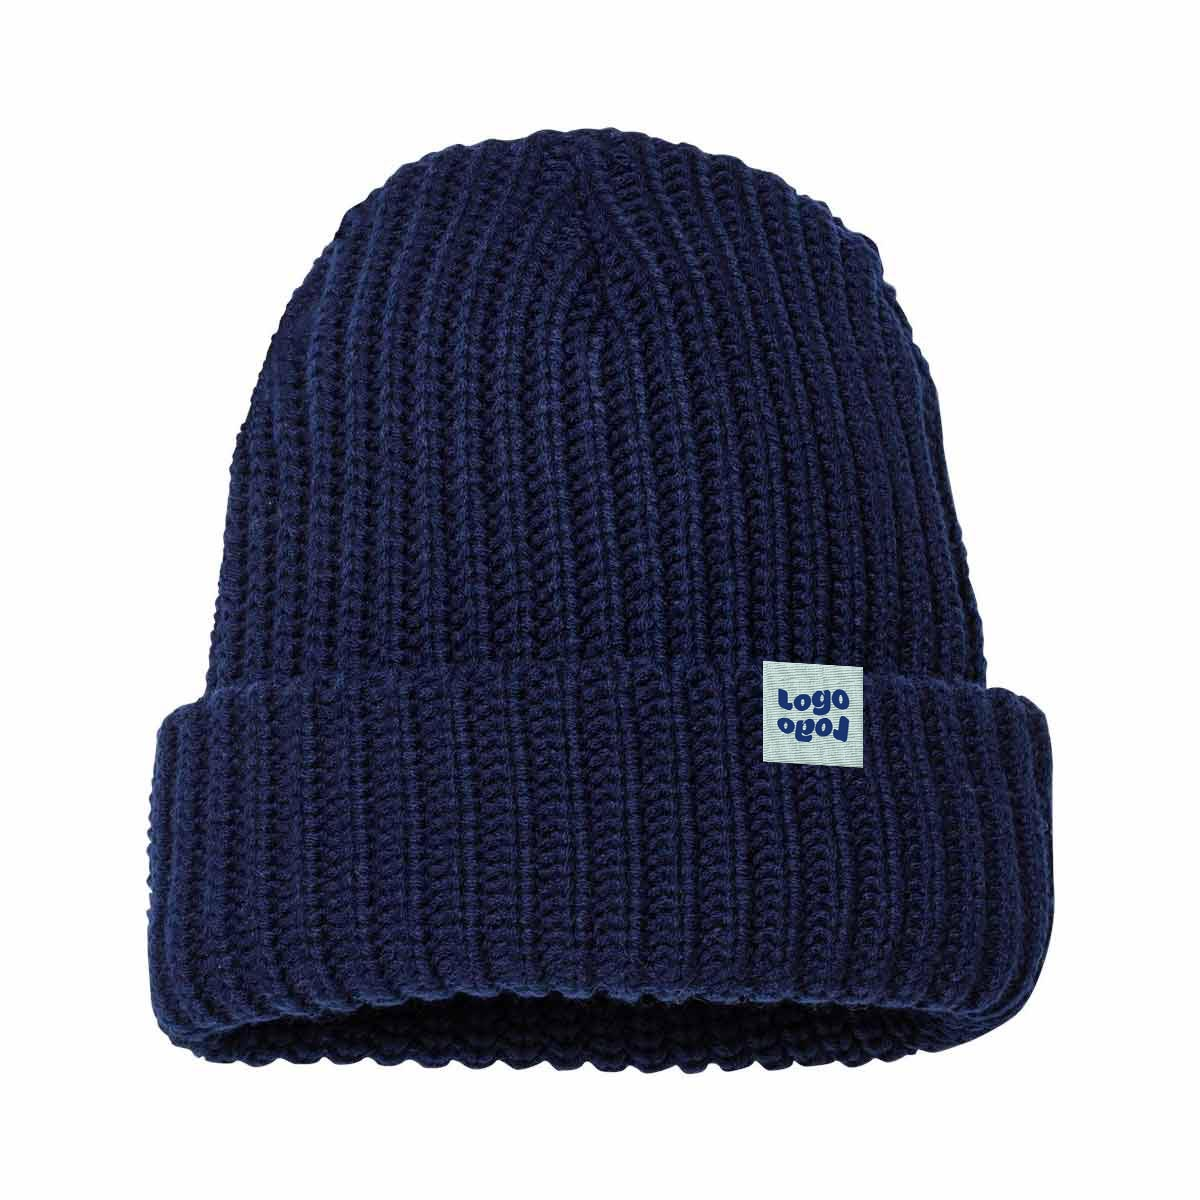 269327 chunky knit beanie 1 woven label